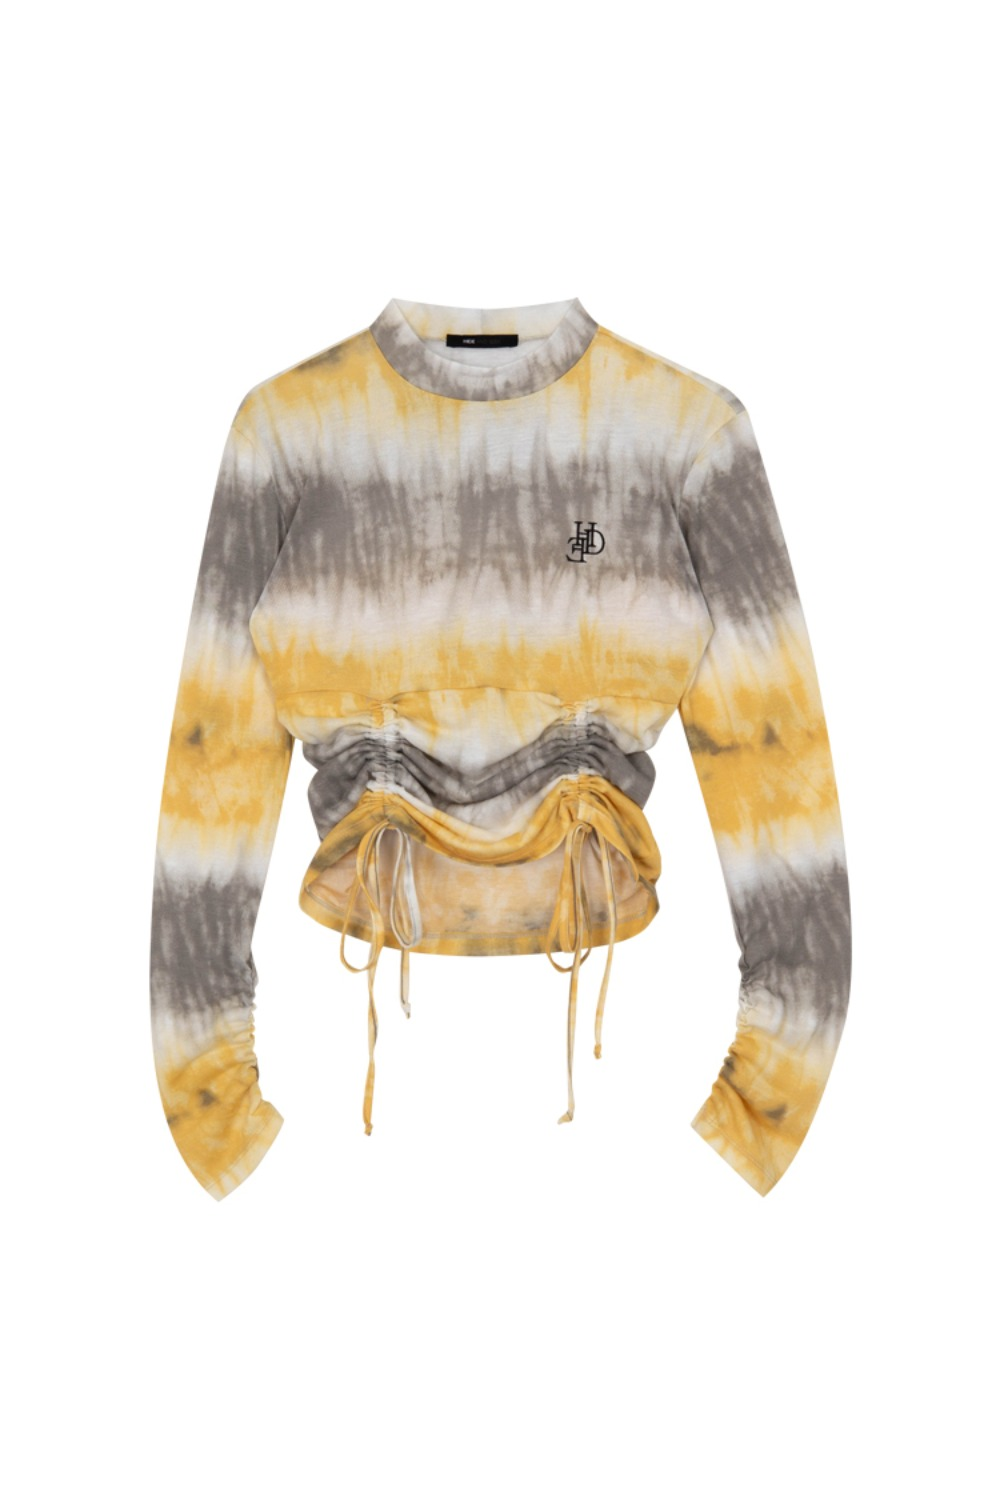 HIDE Tie Dye String Top YELLOW